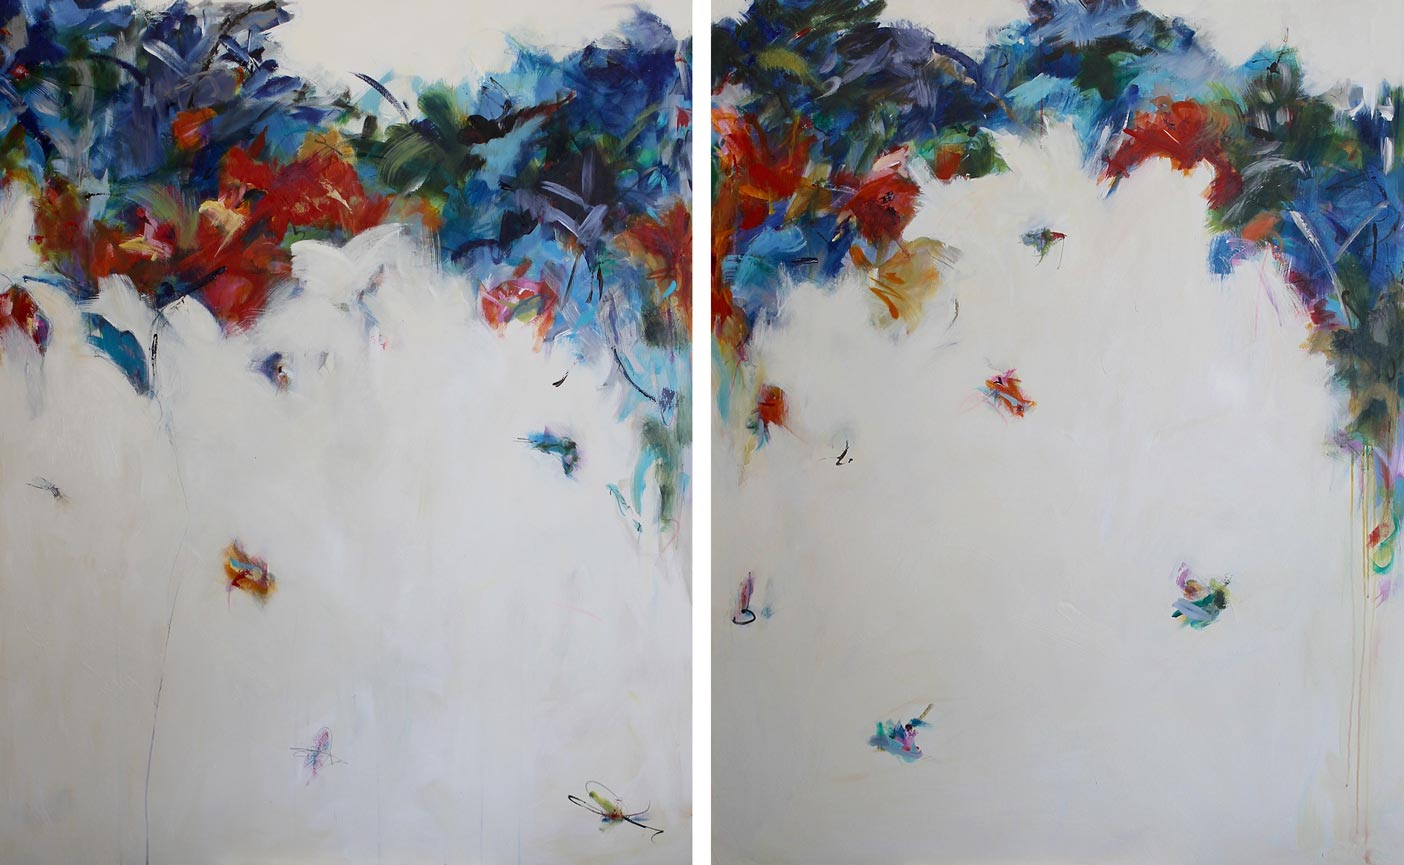 whirl-diptych-60-x-96